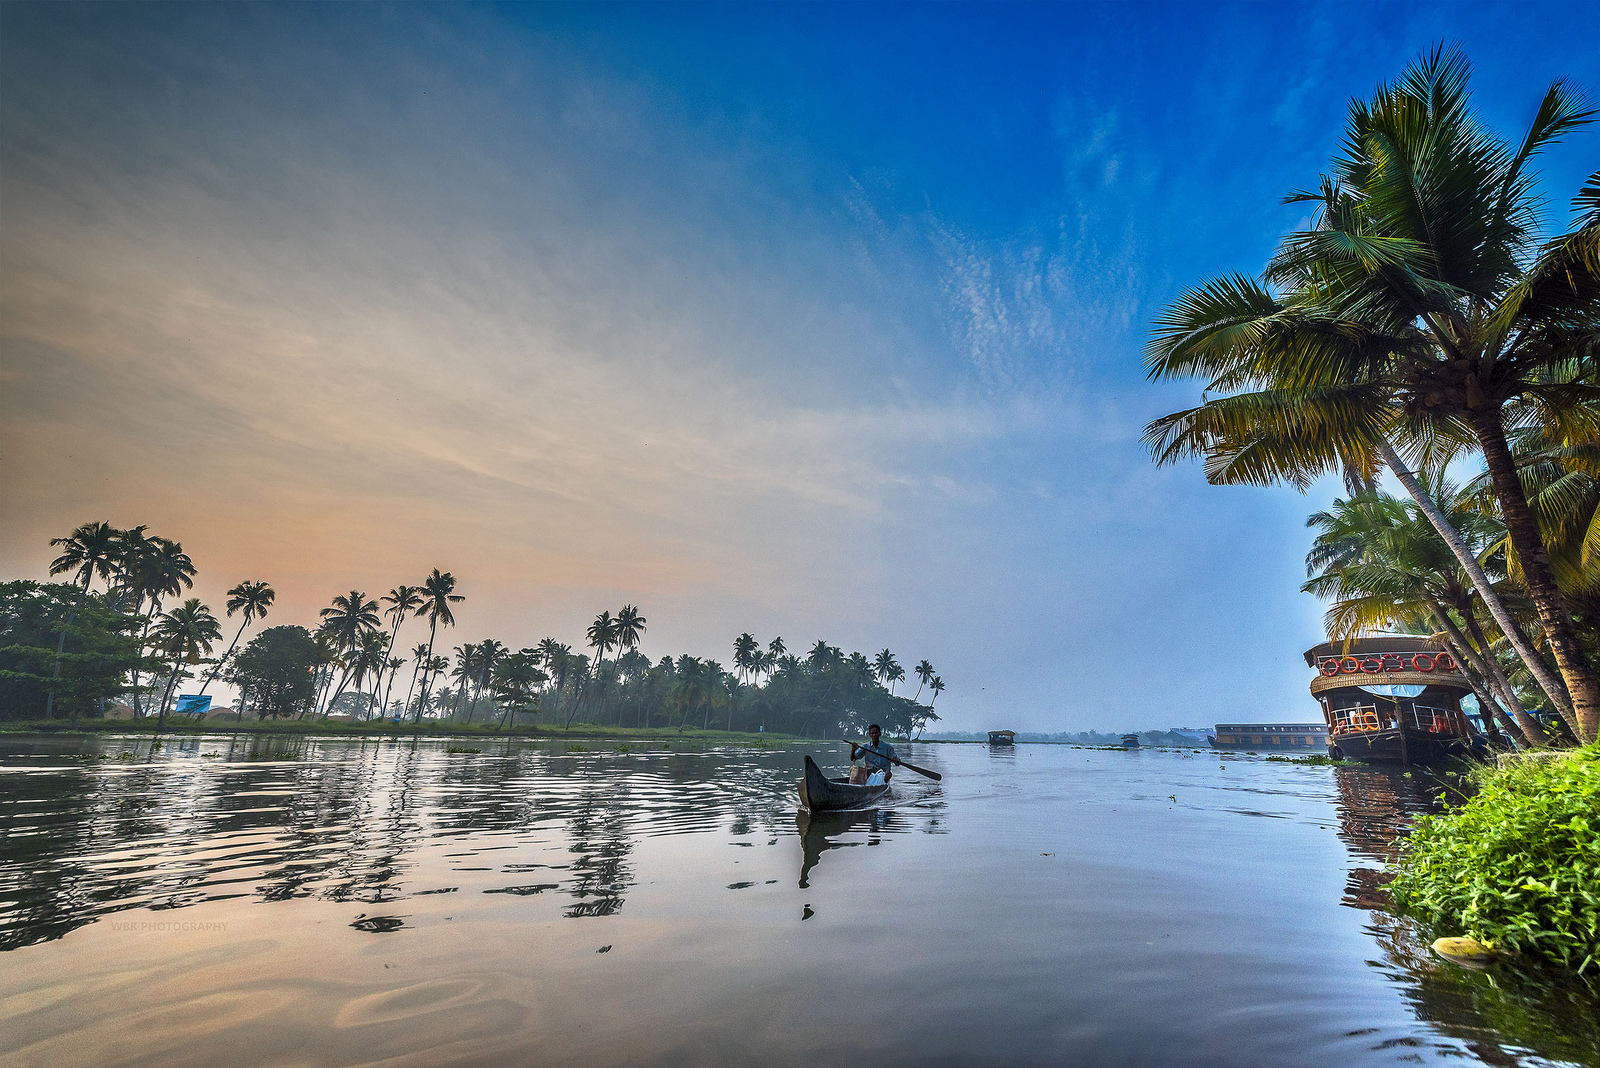 most-instagrammable-destinations-india-image